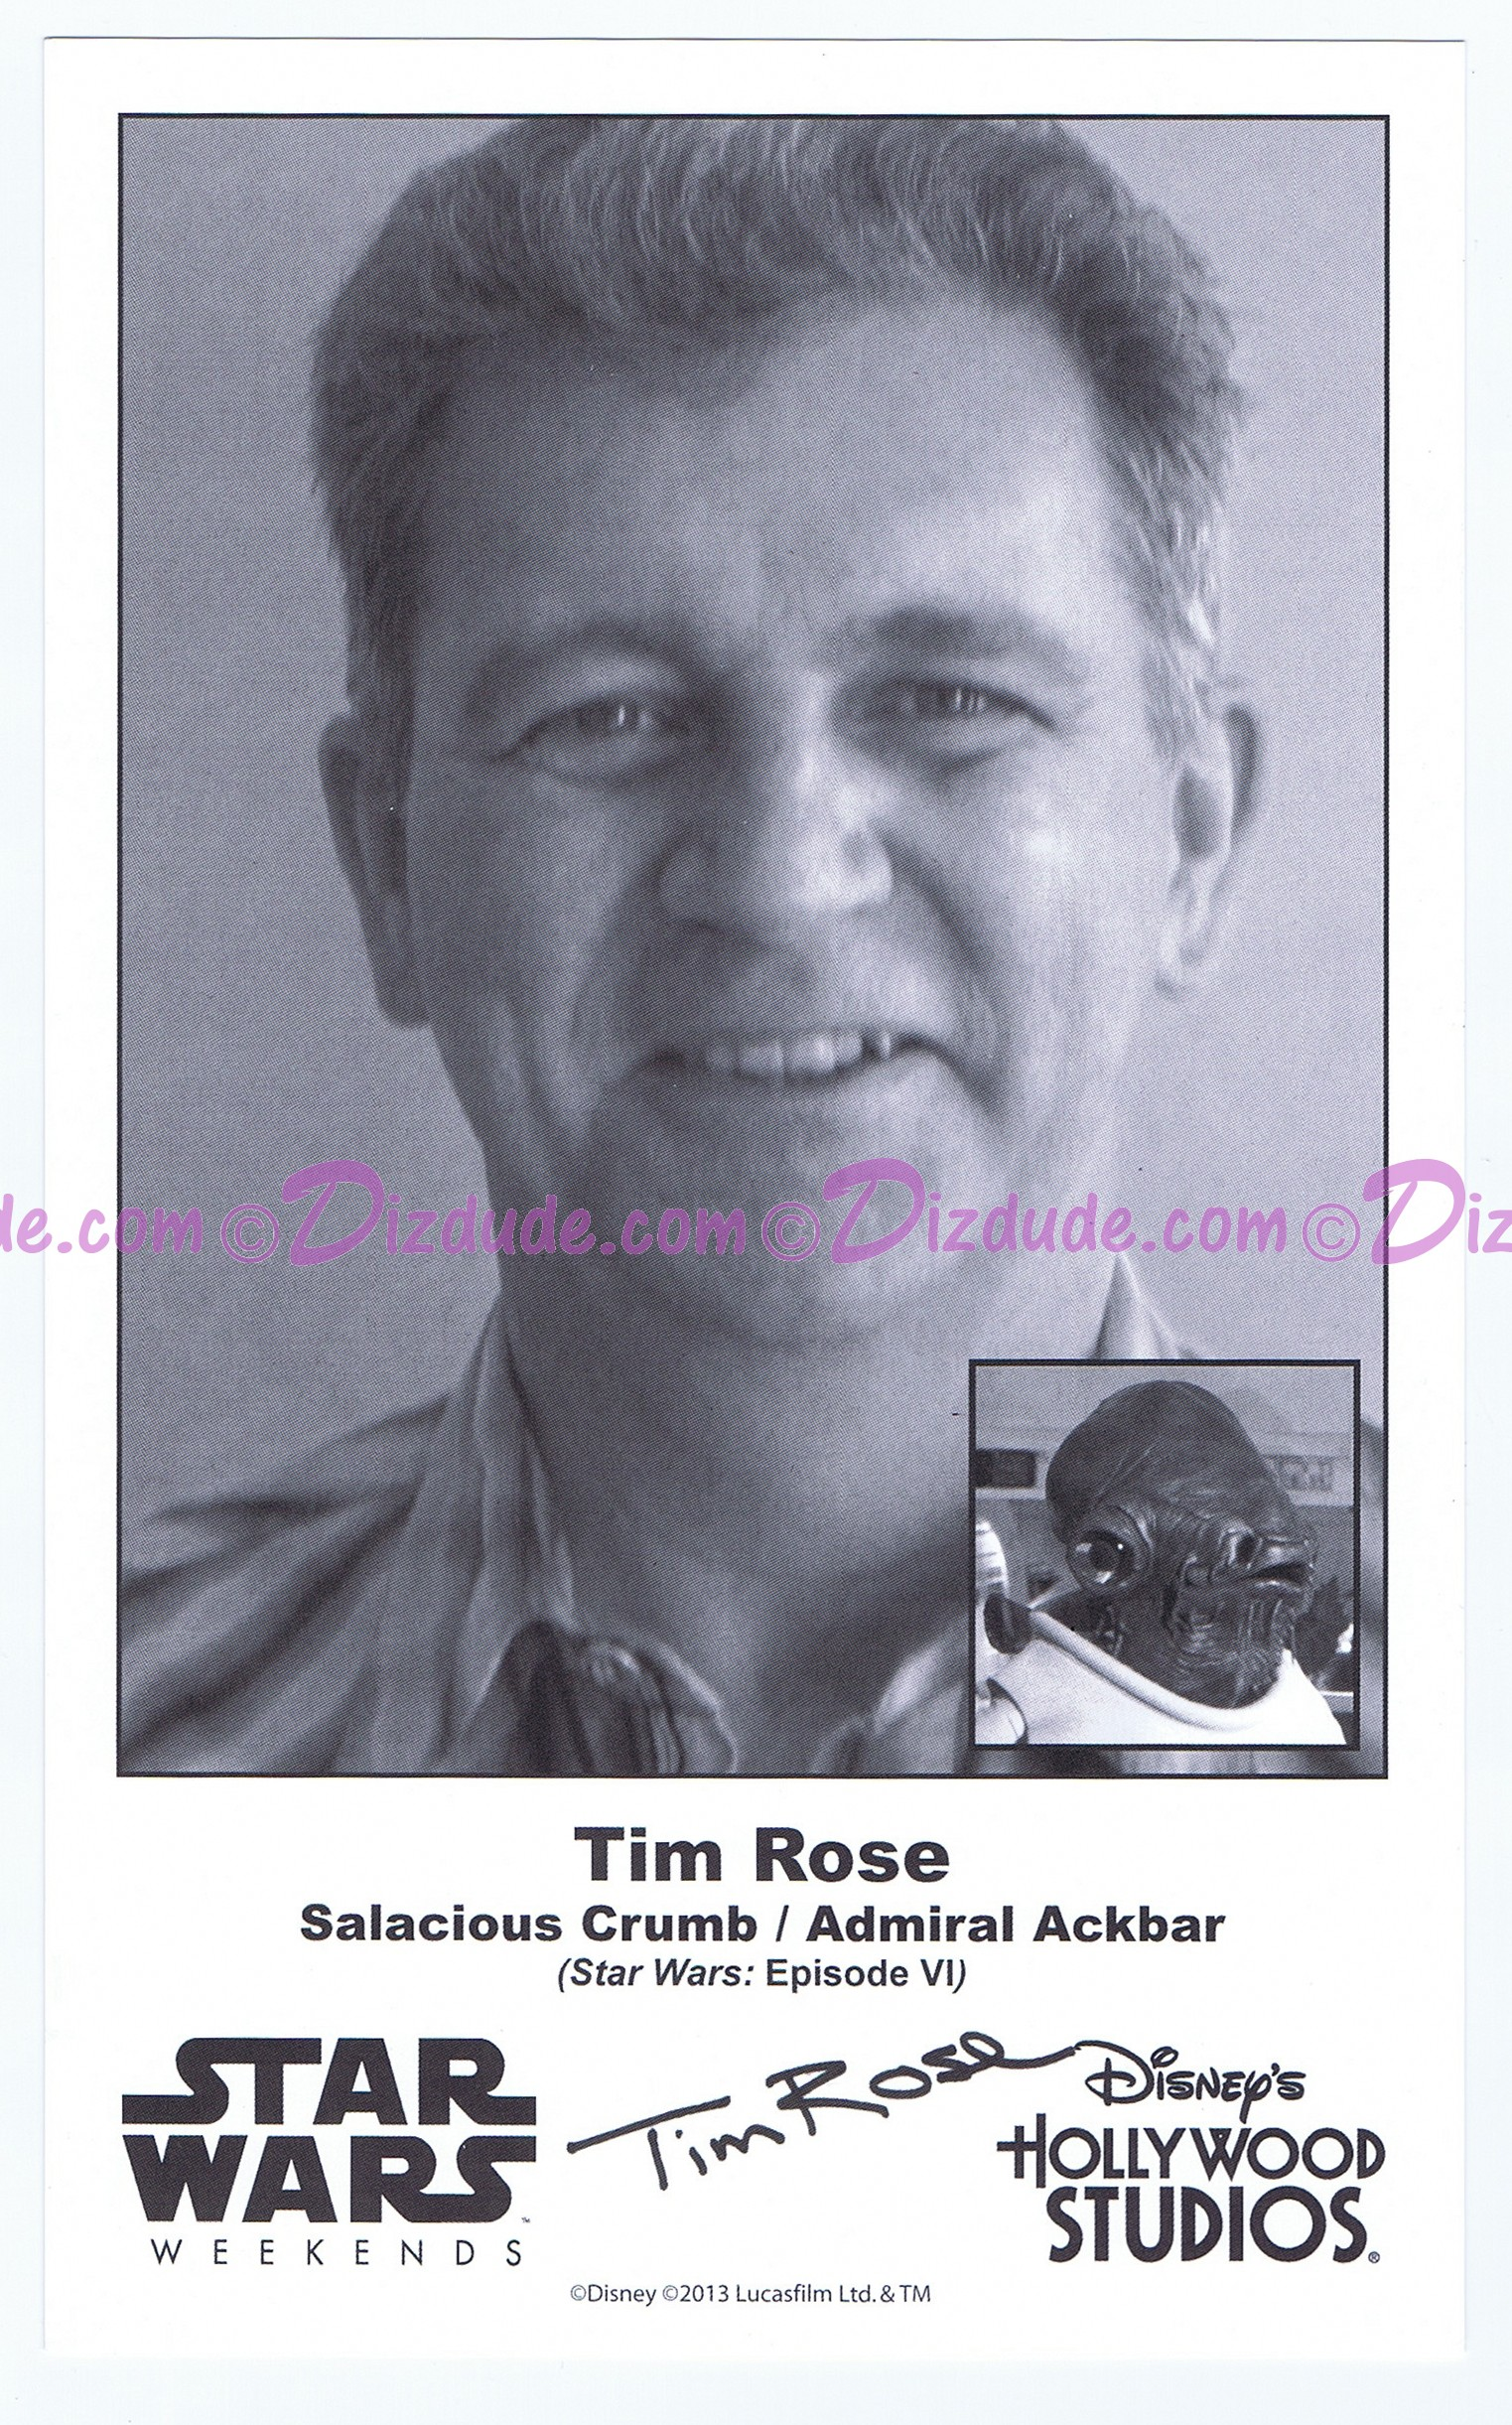 Tim Rose Who Played Admiral Ackbar & Salacious B Crumb Presigned Official Star Wars Weekends 2013 Celebrity Collector Photo